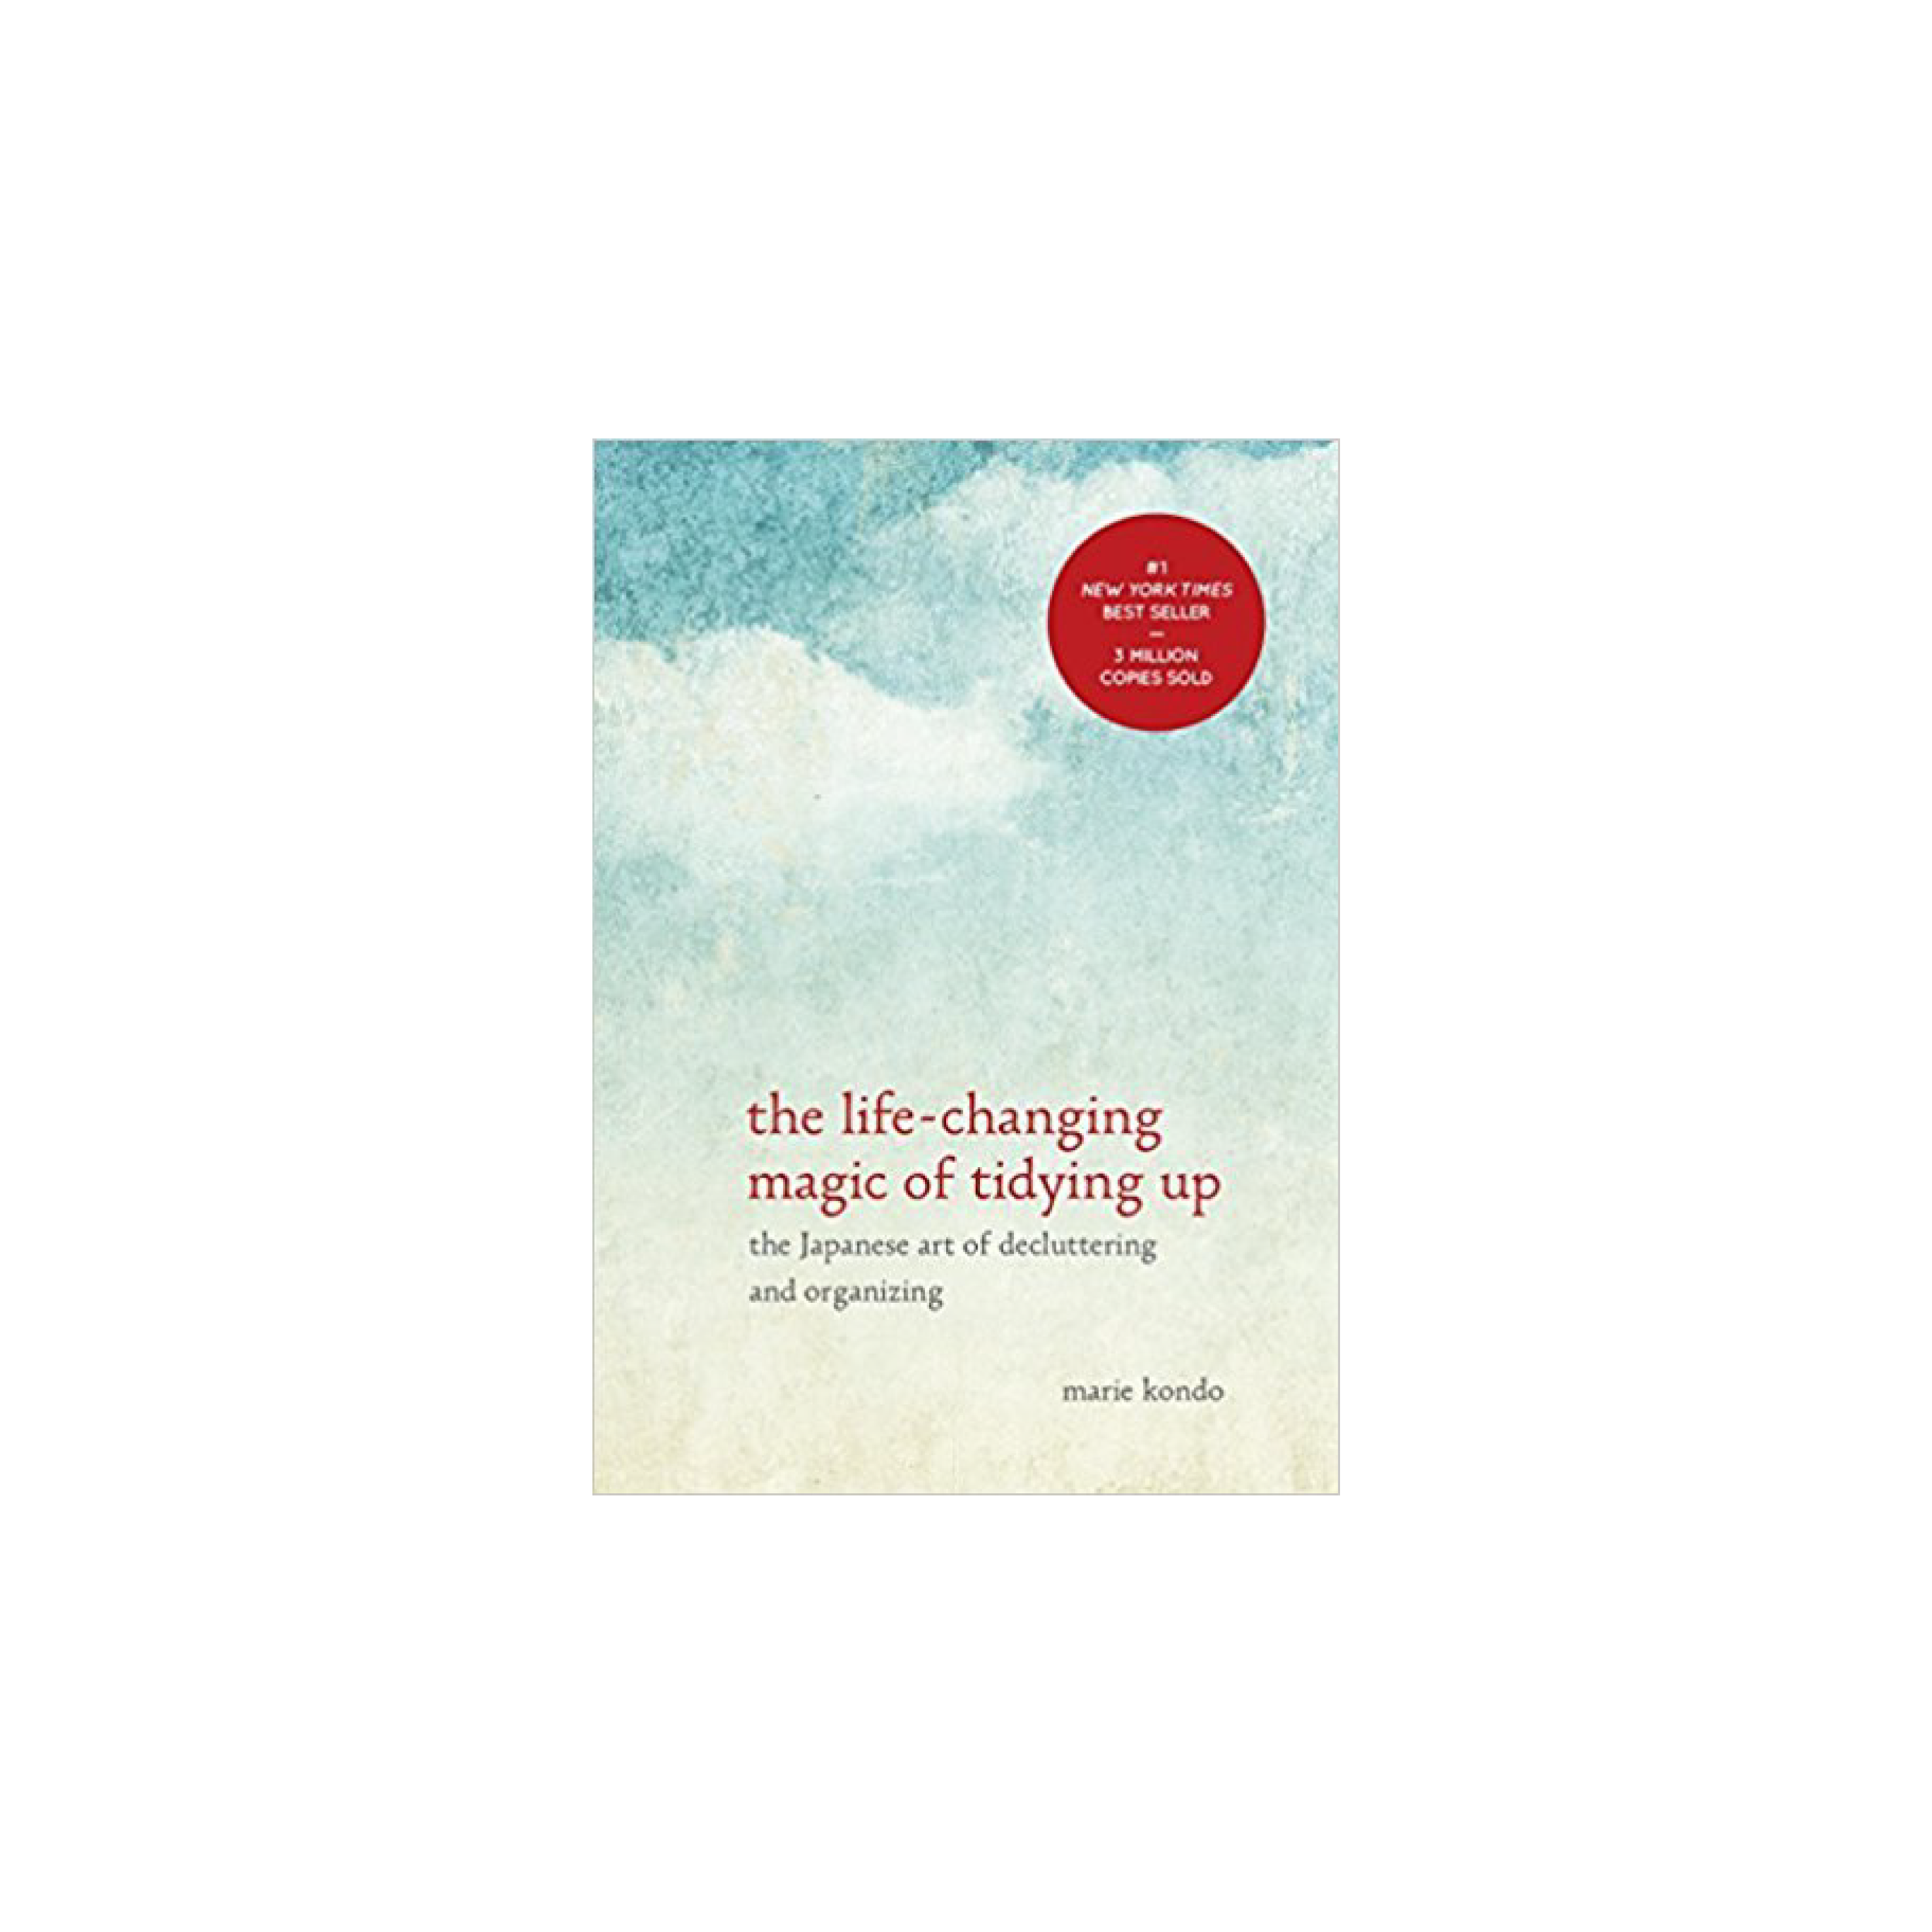 Want to declutter your home in one fell swoop? The KonMari method in this book is your new best friend!